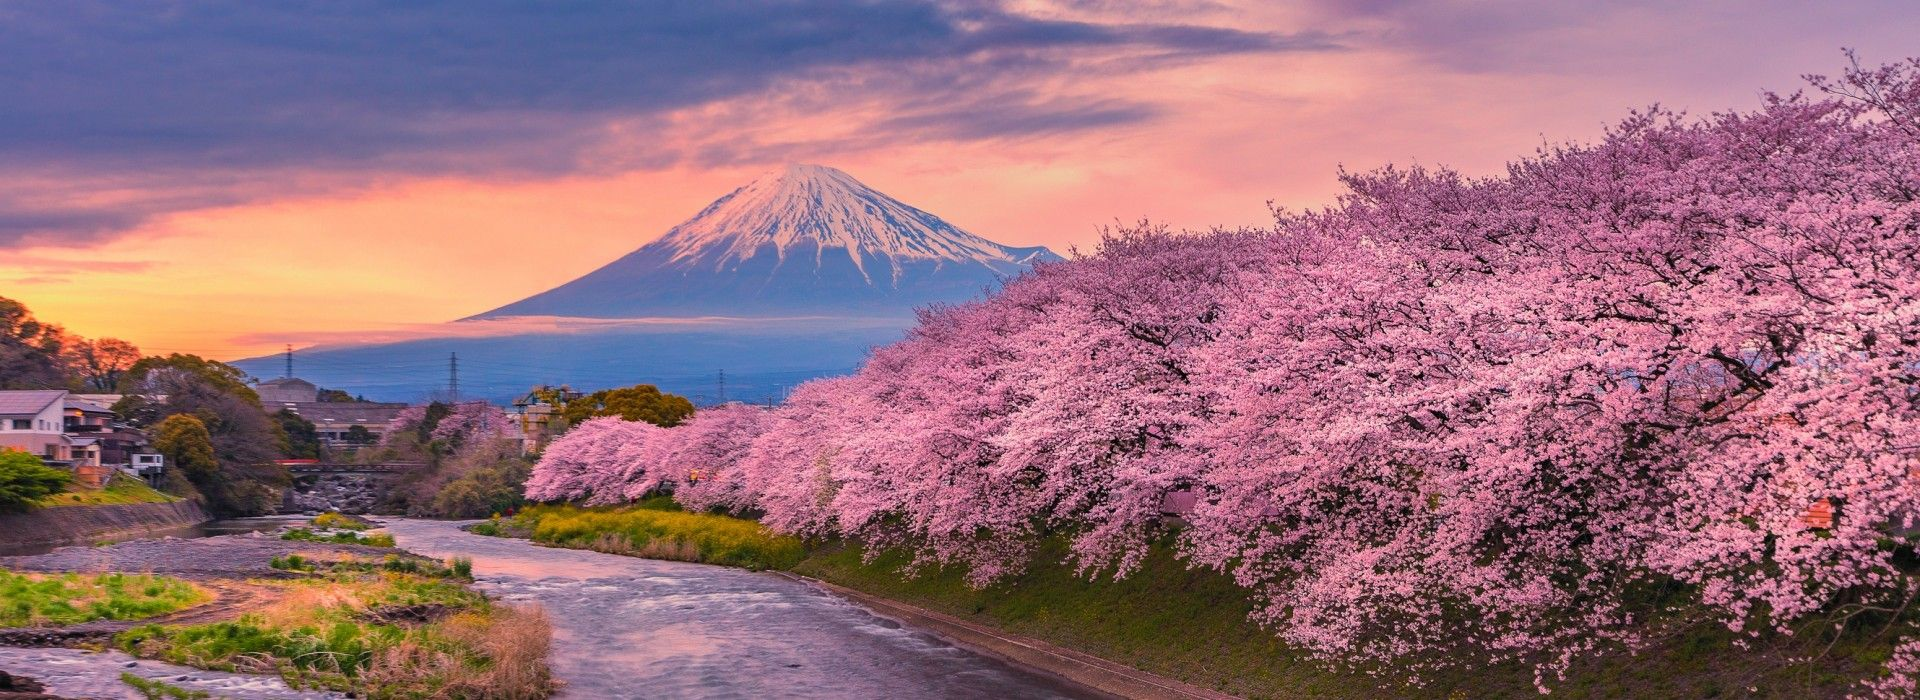 Special interests and hobbies Tours in Tokyo